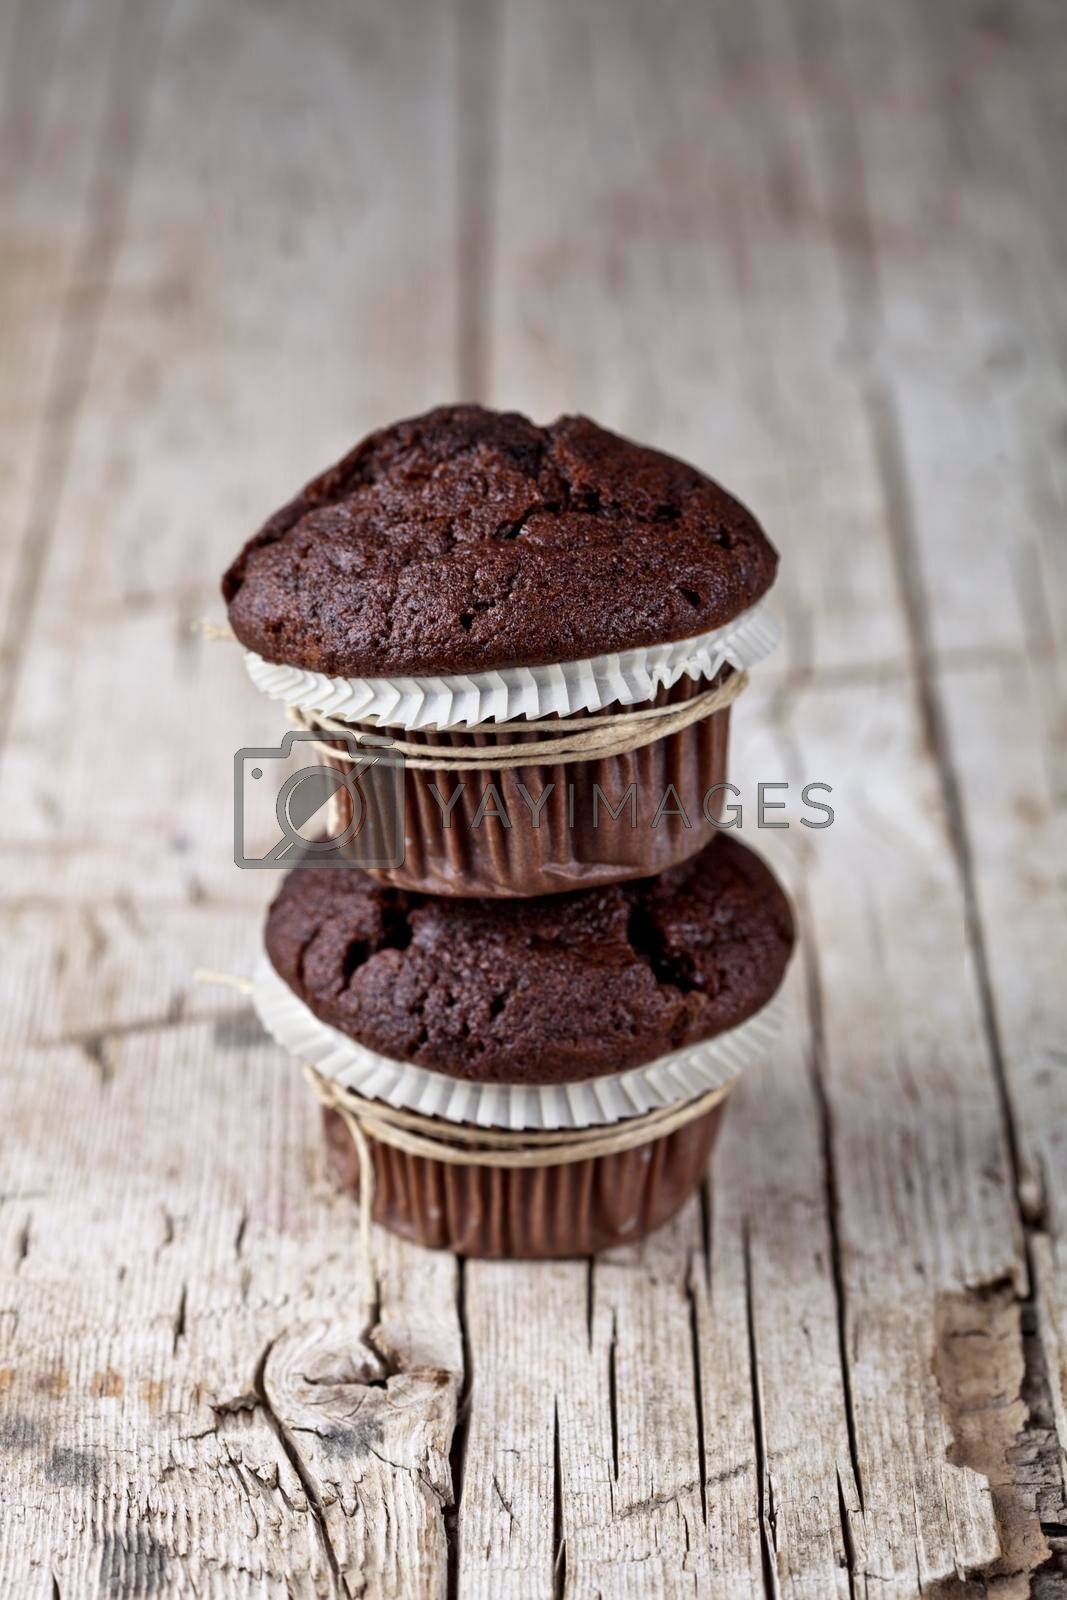 Two dark chocolate dark muffins on rustic wooden table background.